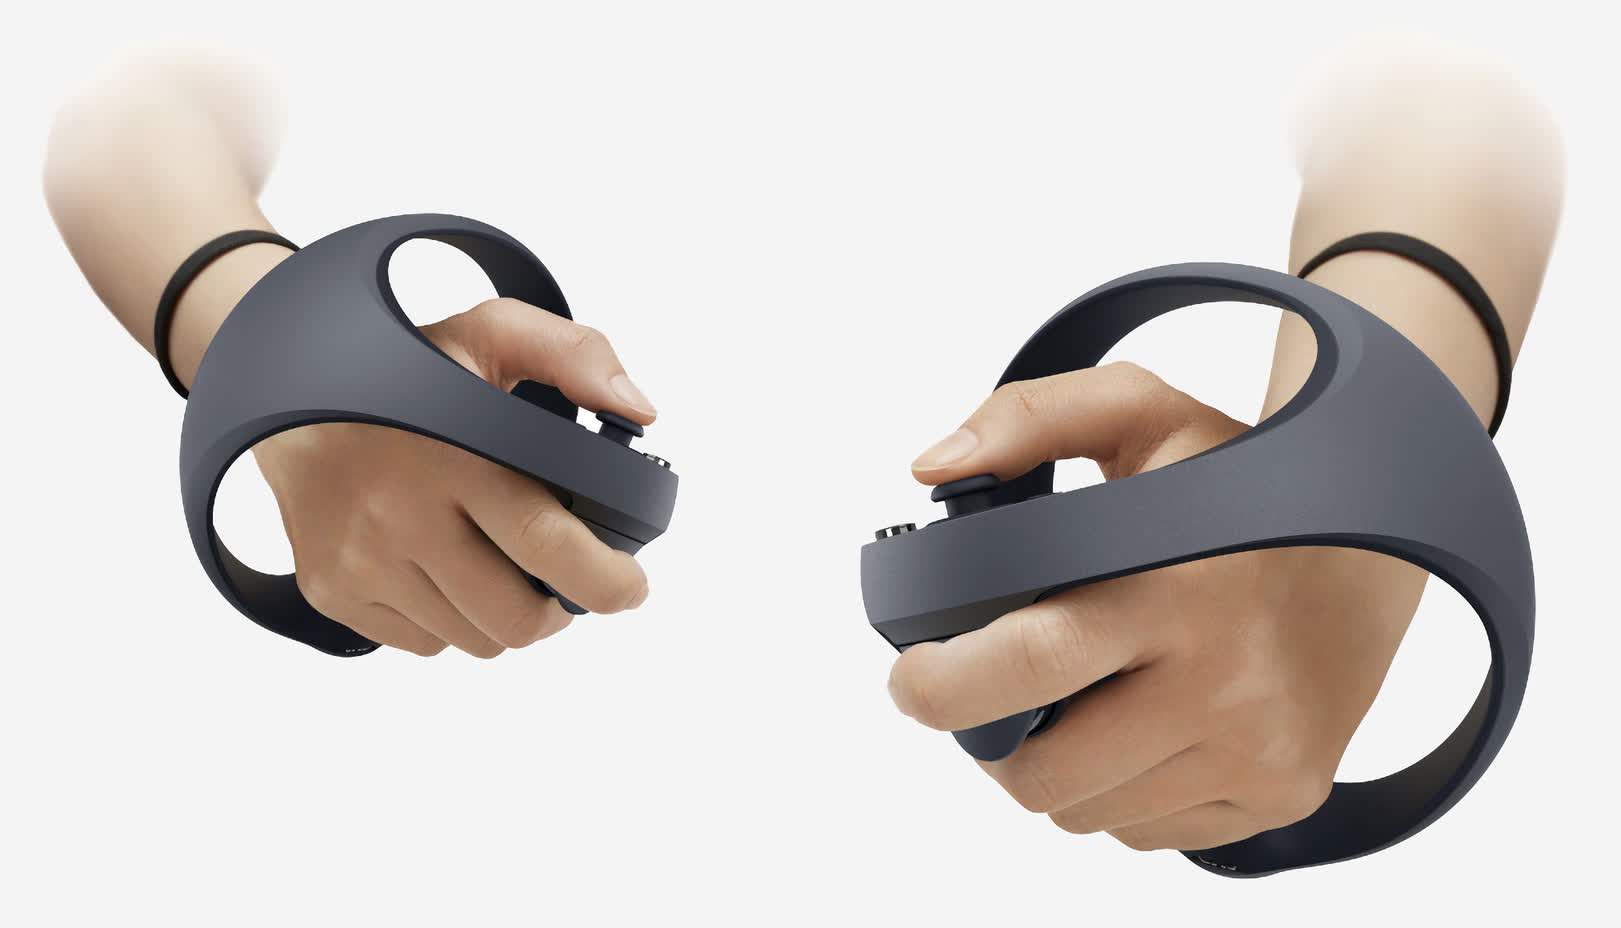 Sony showcases the controllers for its PlayStation 5 virtual reality system